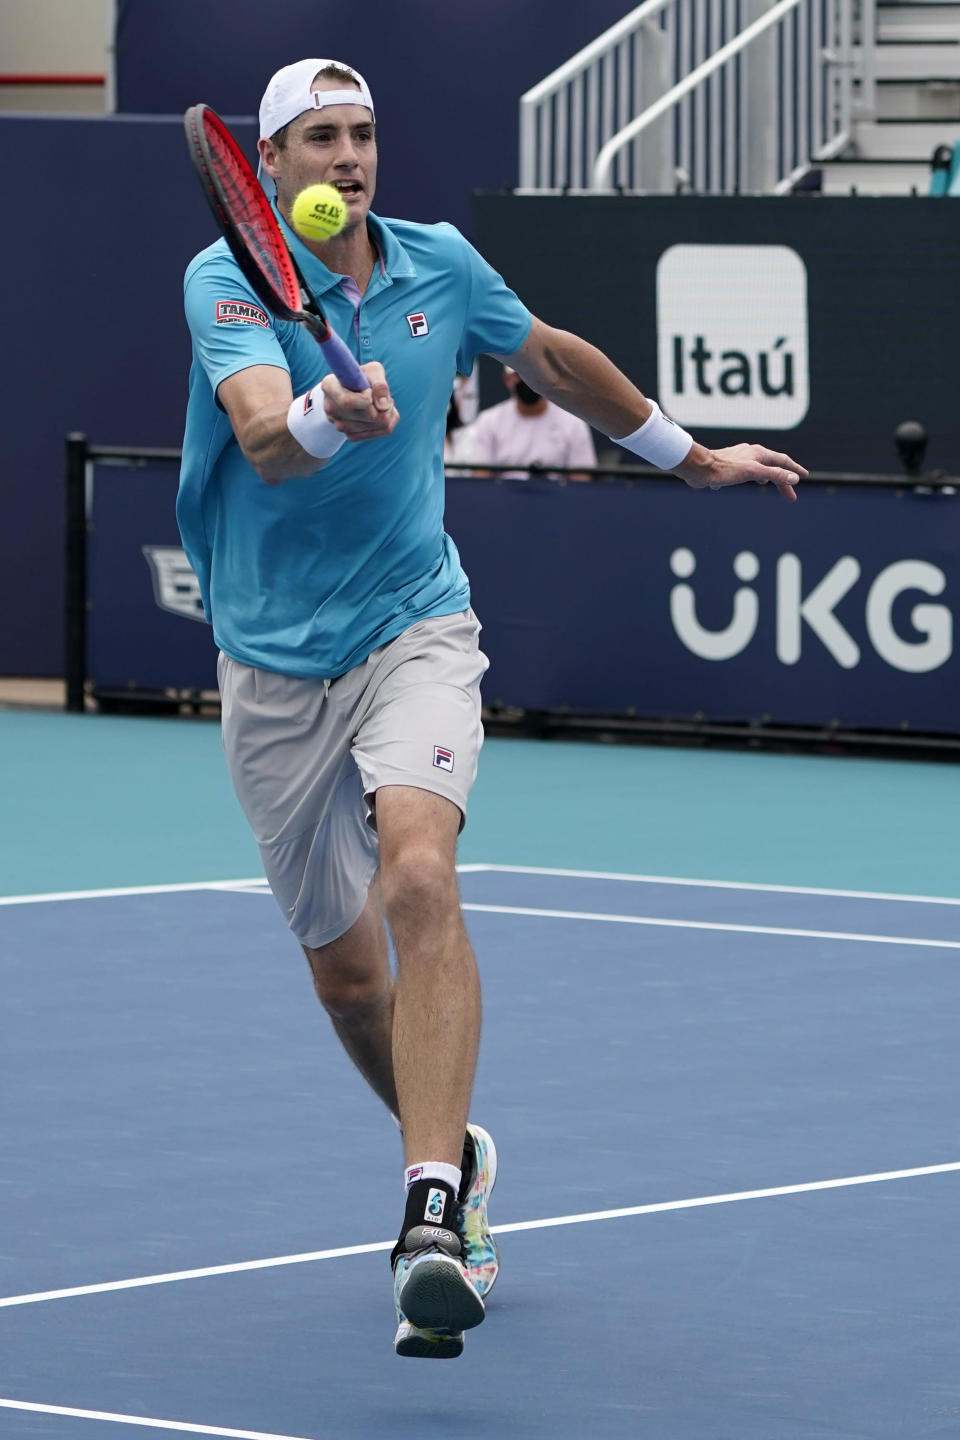 John Isner returns to Roberto Bautista Agut, of Spain, during the Miami Open tennis tournament, Tuesday, March 30, 2021, in Miami Gardens, Fla. (AP Photo/Marta Lavandier)